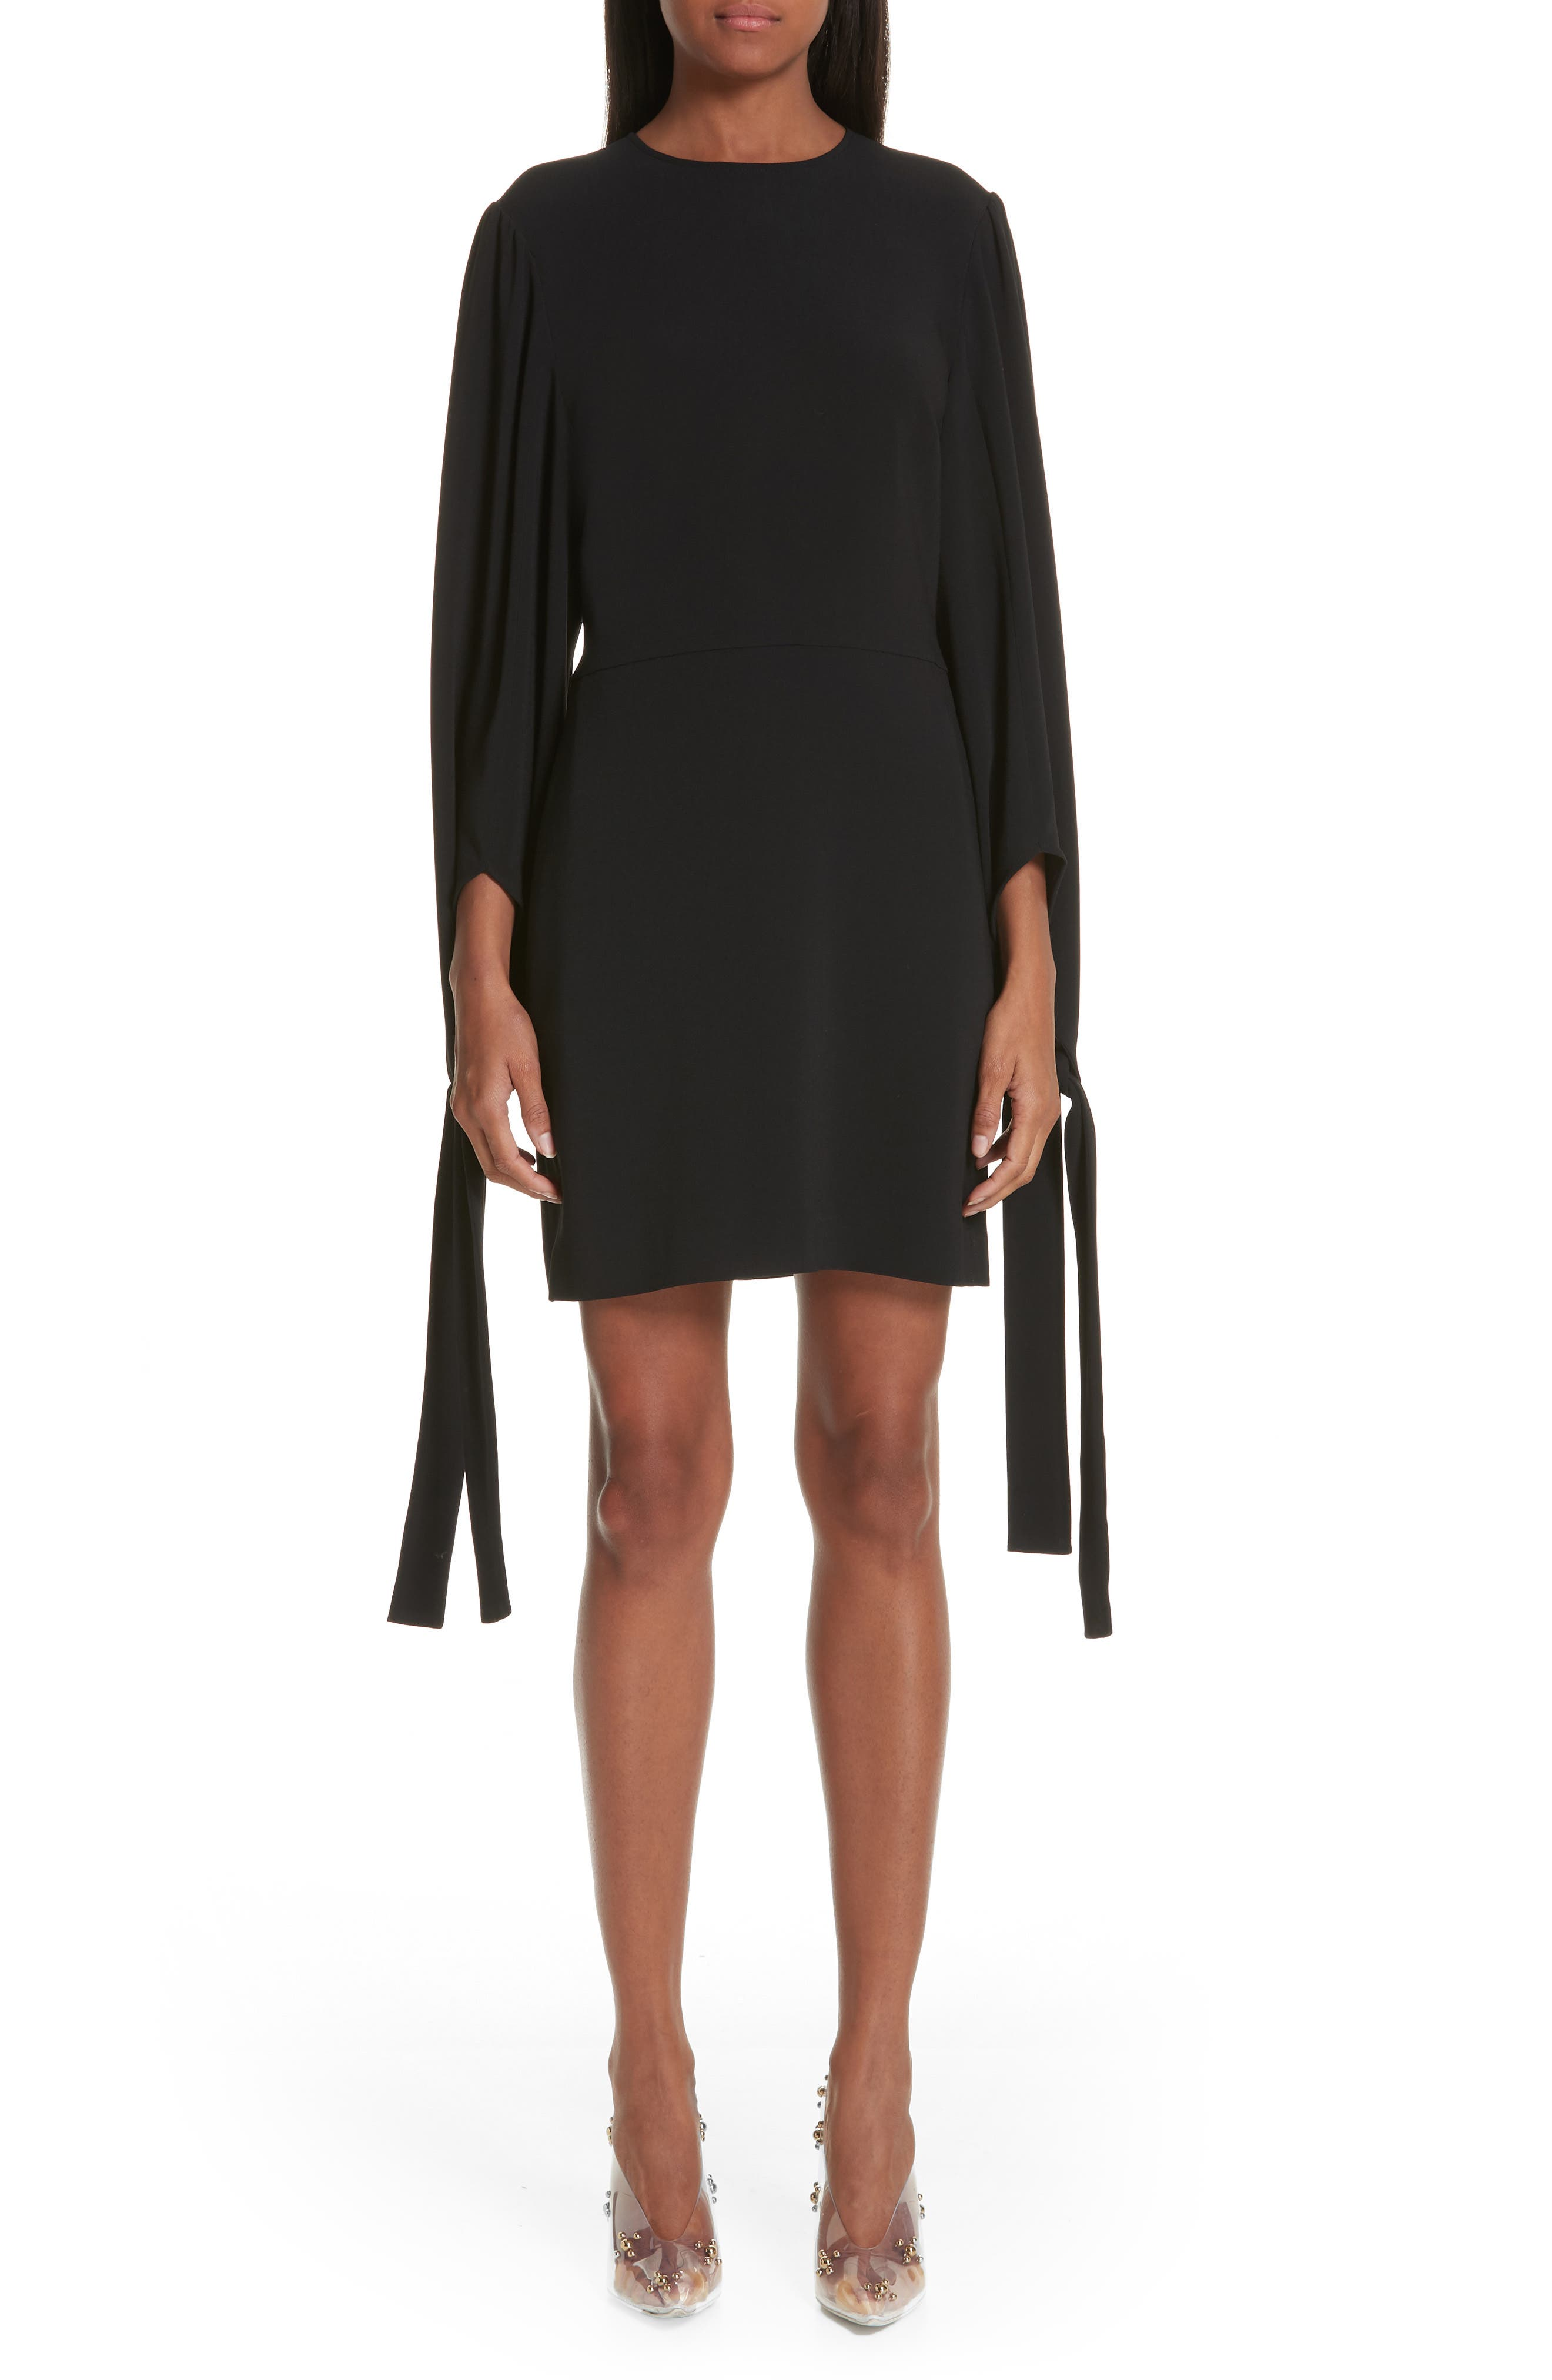 Stella Mccartney Tie Cuff Stretch Cady Dress, 8 IT - Black